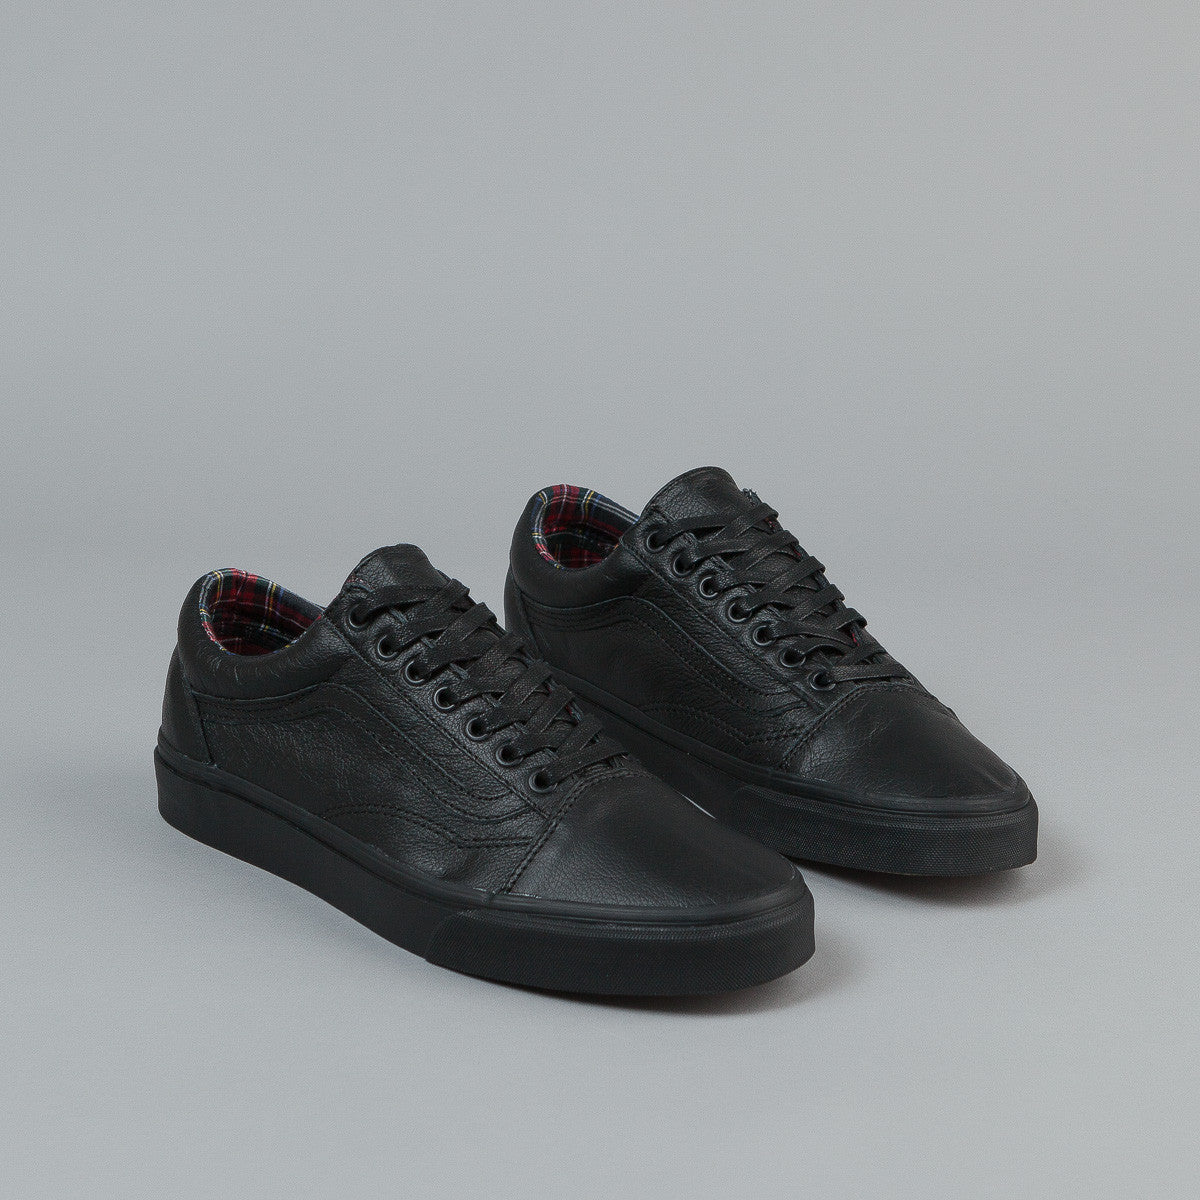 Vans Old Skool Shoes (Leather) - Black / Plaid